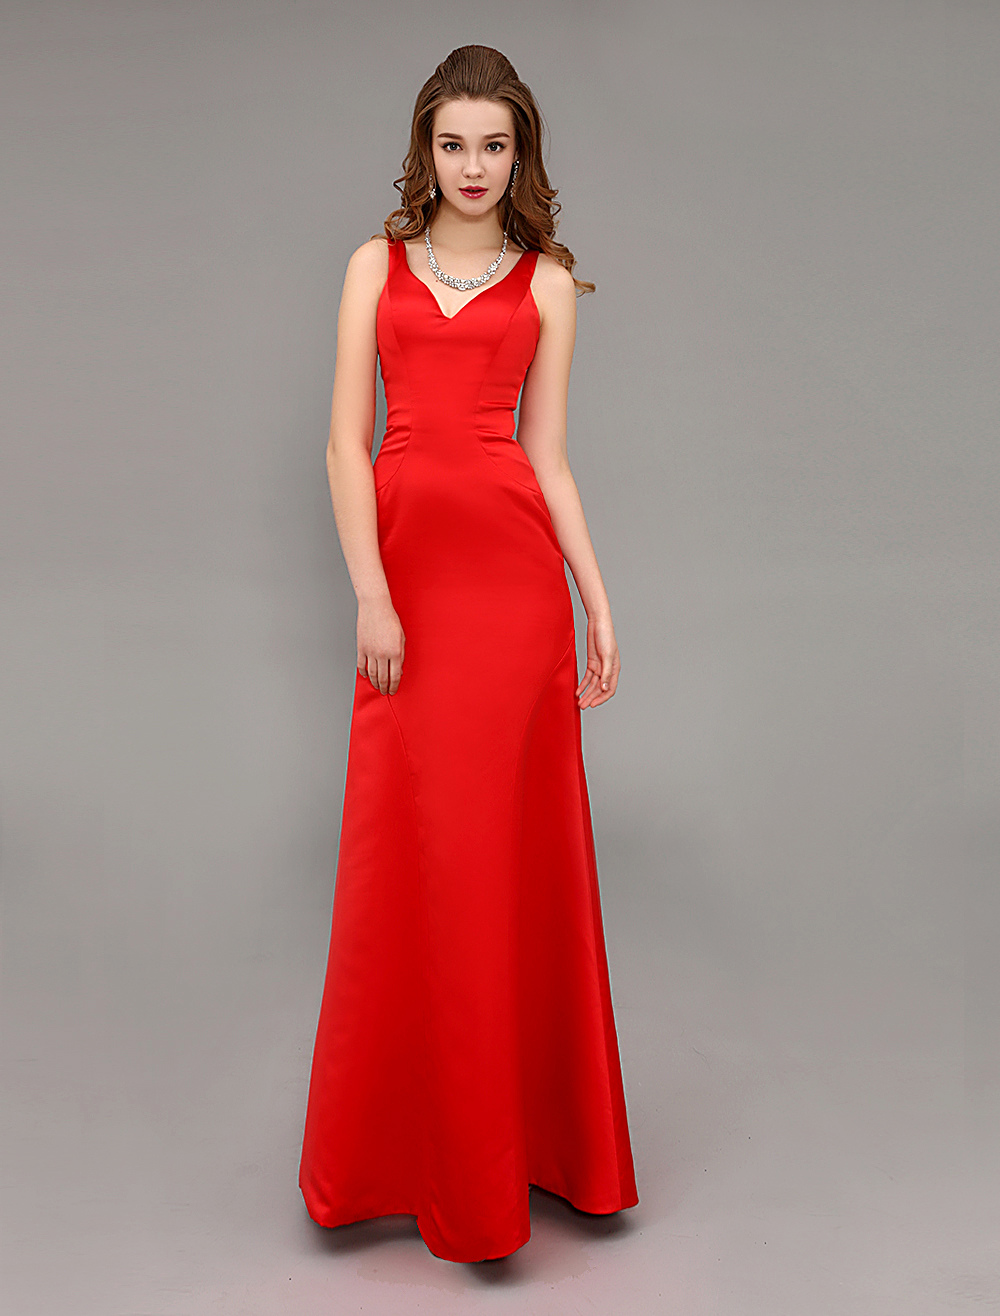 Red Satin V-neck Long Evening Dress With Open Back (Wedding Cheap Party Dress) photo